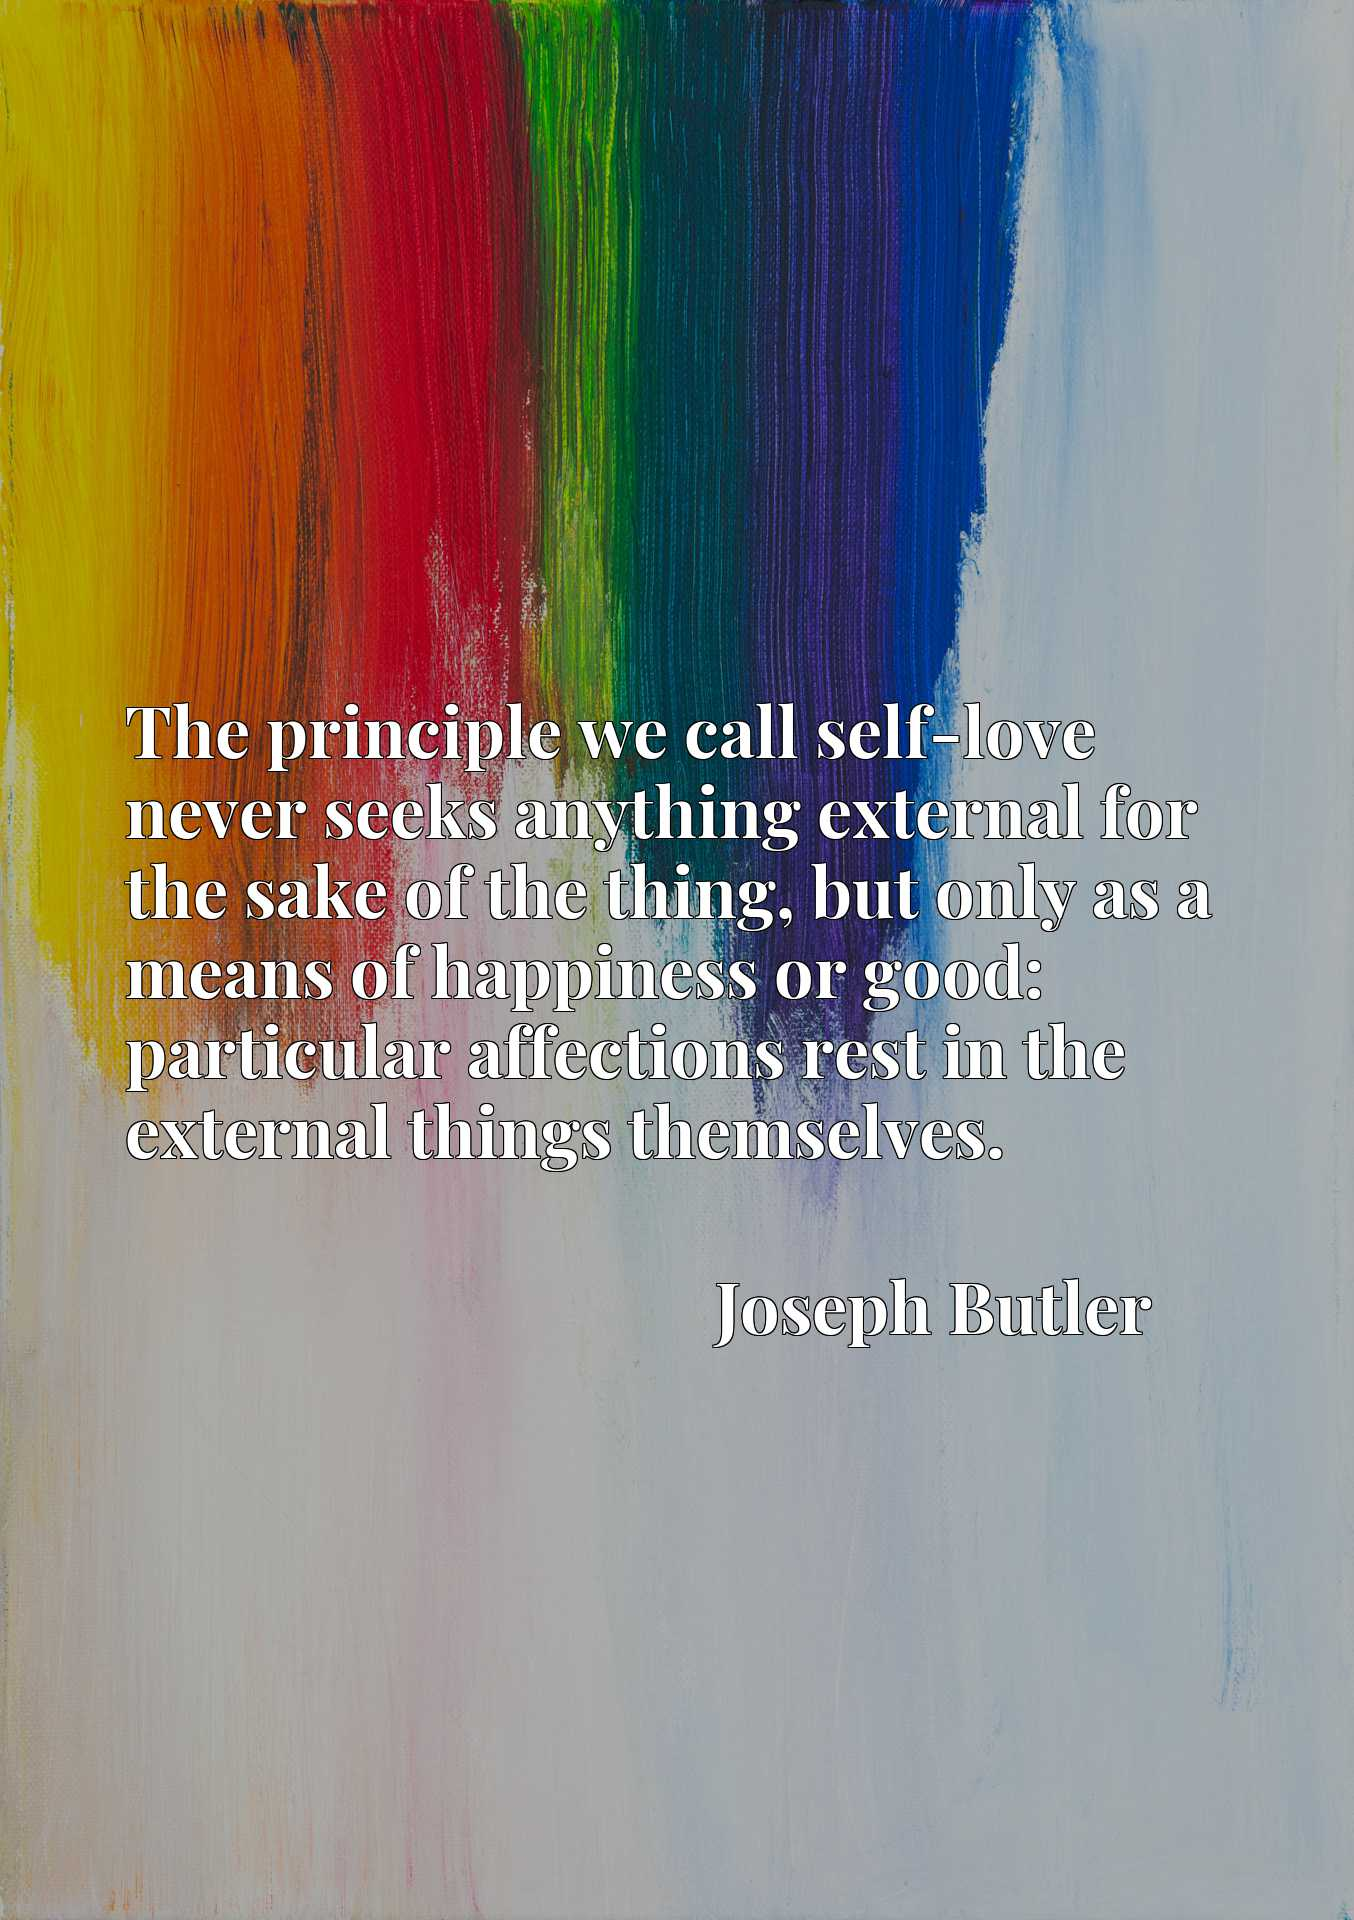 The principle we call self-love never seeks anything external for the sake of the thing, but only as a means of happiness or good: particular affections rest in the external things themselves.